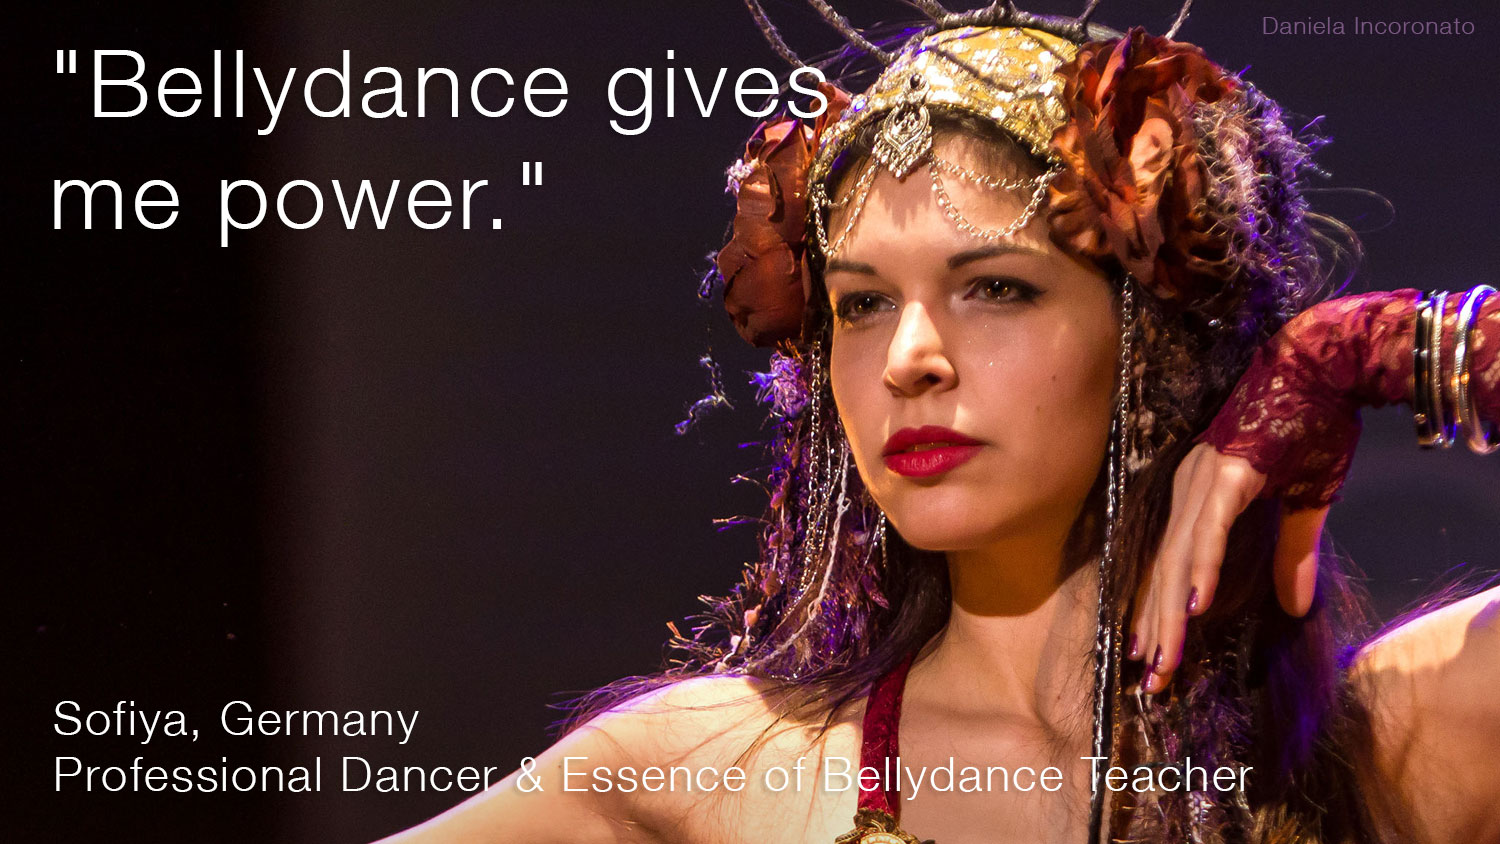 Bellydance Teacher Training - Professional Bellydancer and Bellydance Teacher Sofiya from Berlin